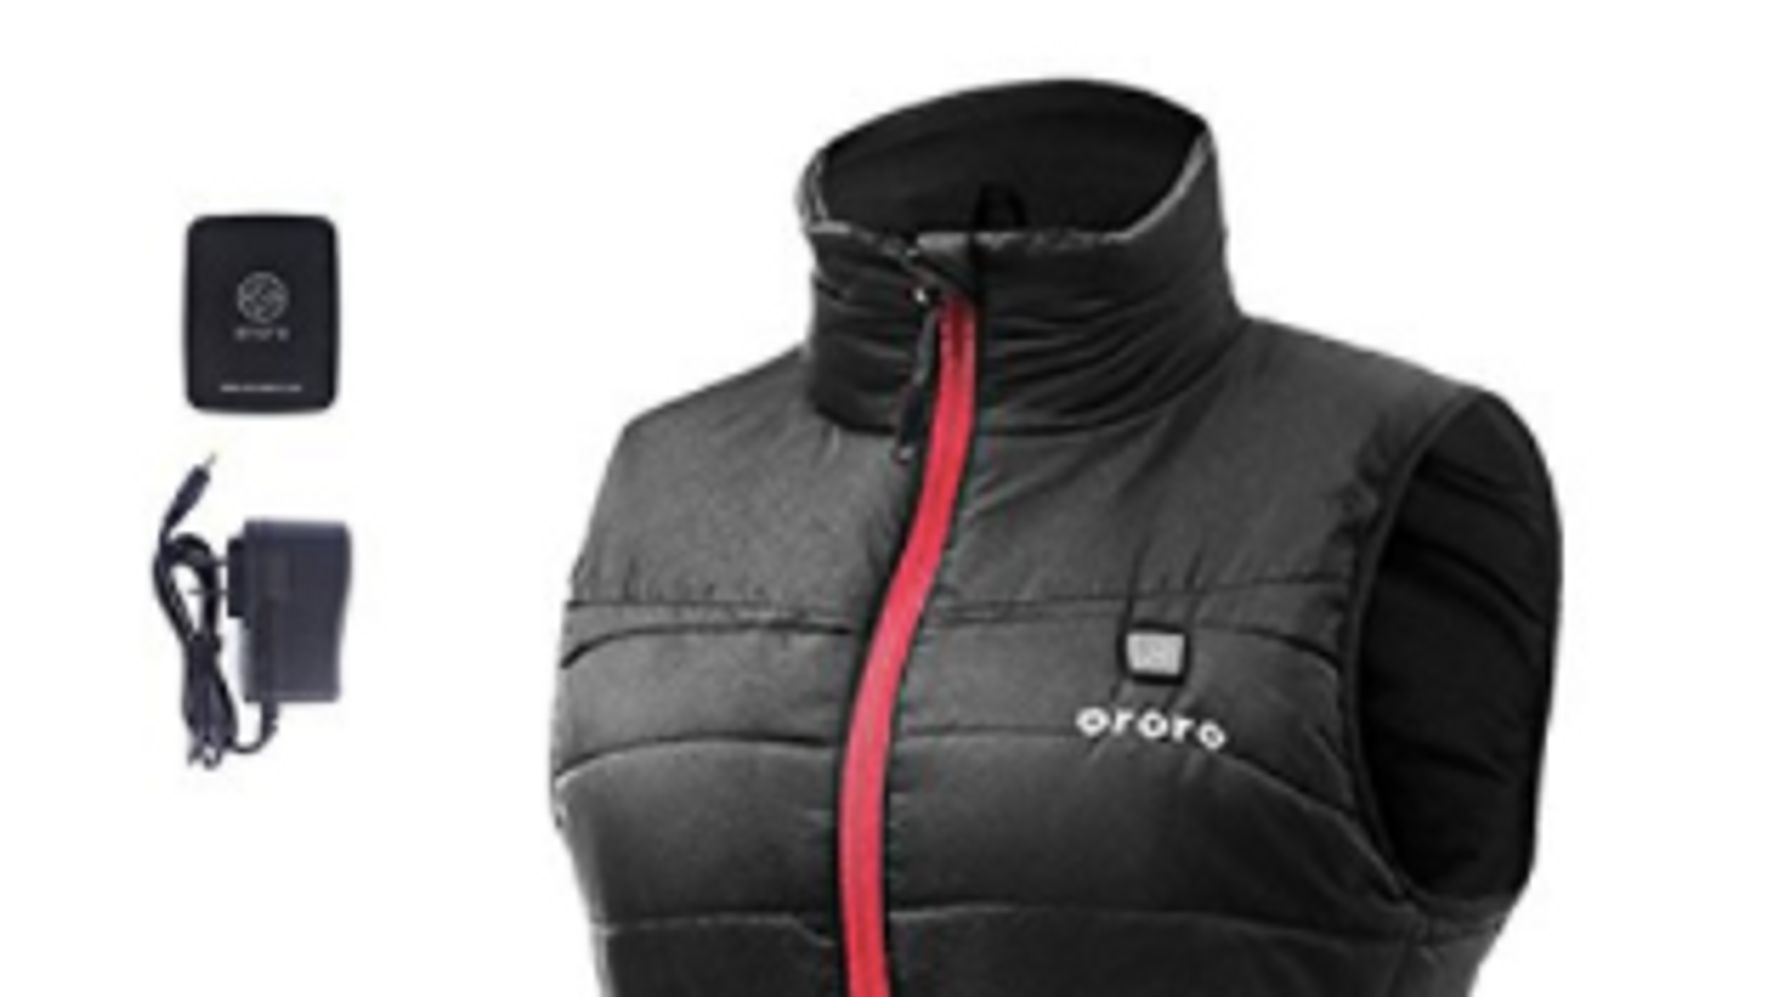 a1f5bbac8 12 Items Of Heated Clothing For The Person Who's Always Cold ...